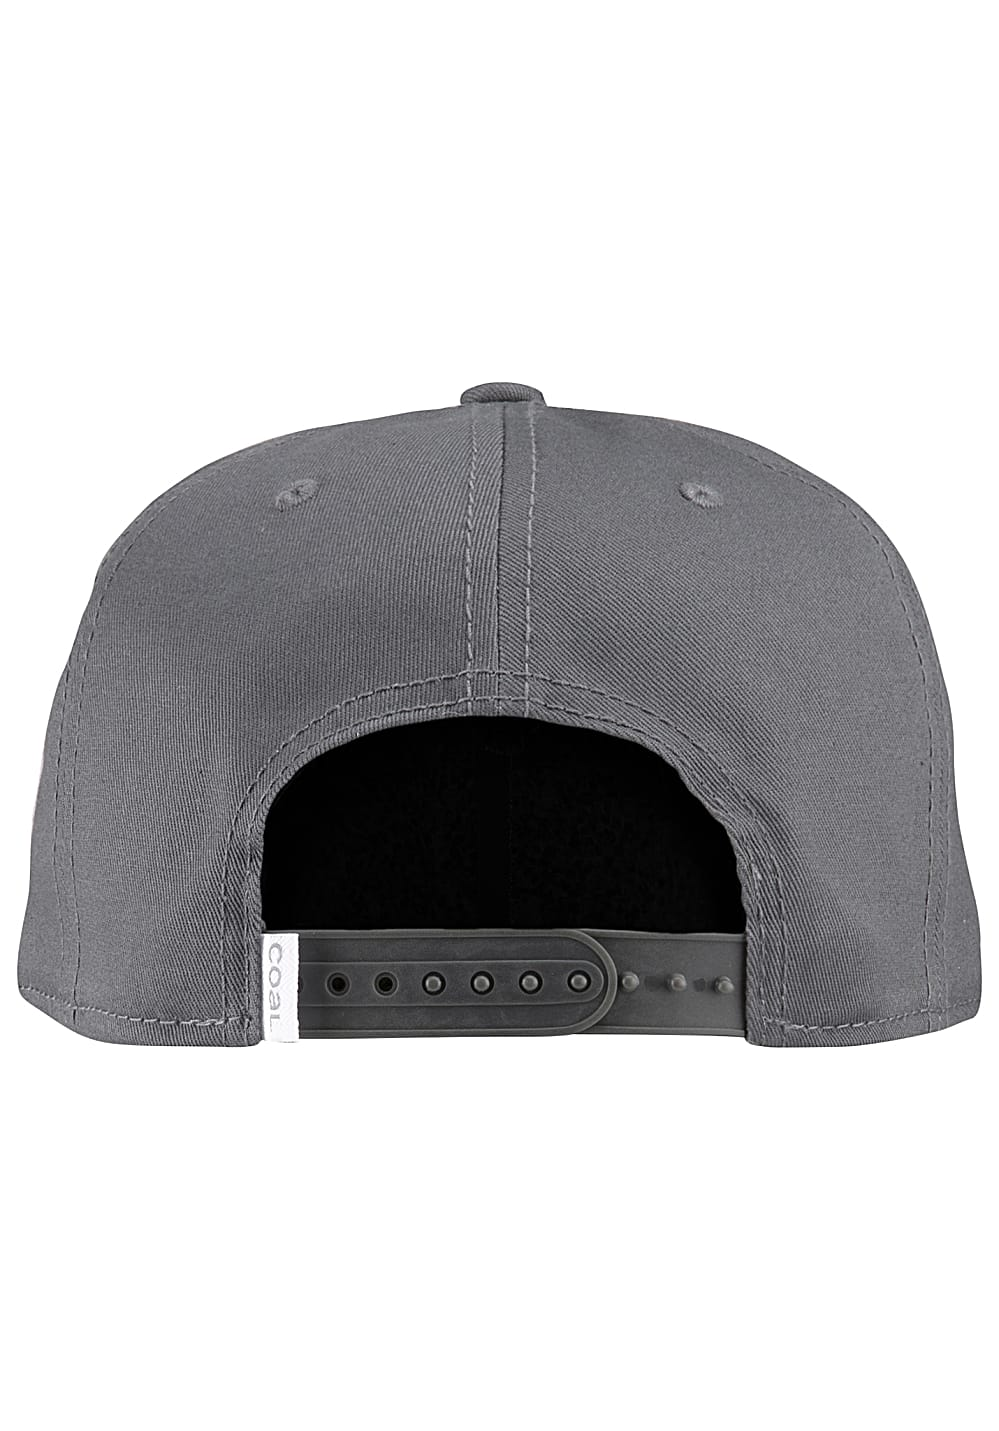 edceb02a21ed6 Coal The Wilderness - Snapback Cap - Grey - Planet Sports